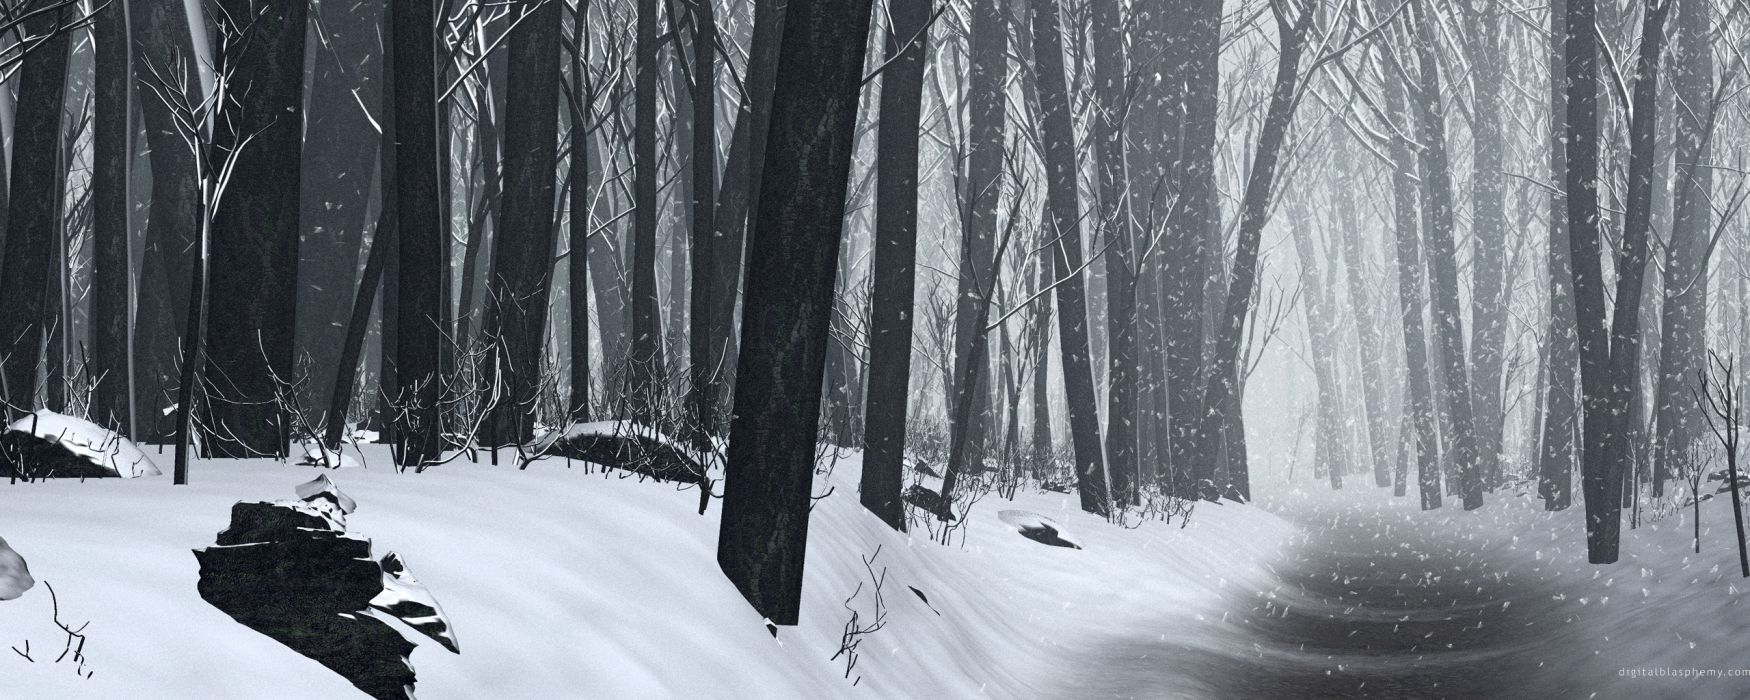 snow forests CGI wallpaper